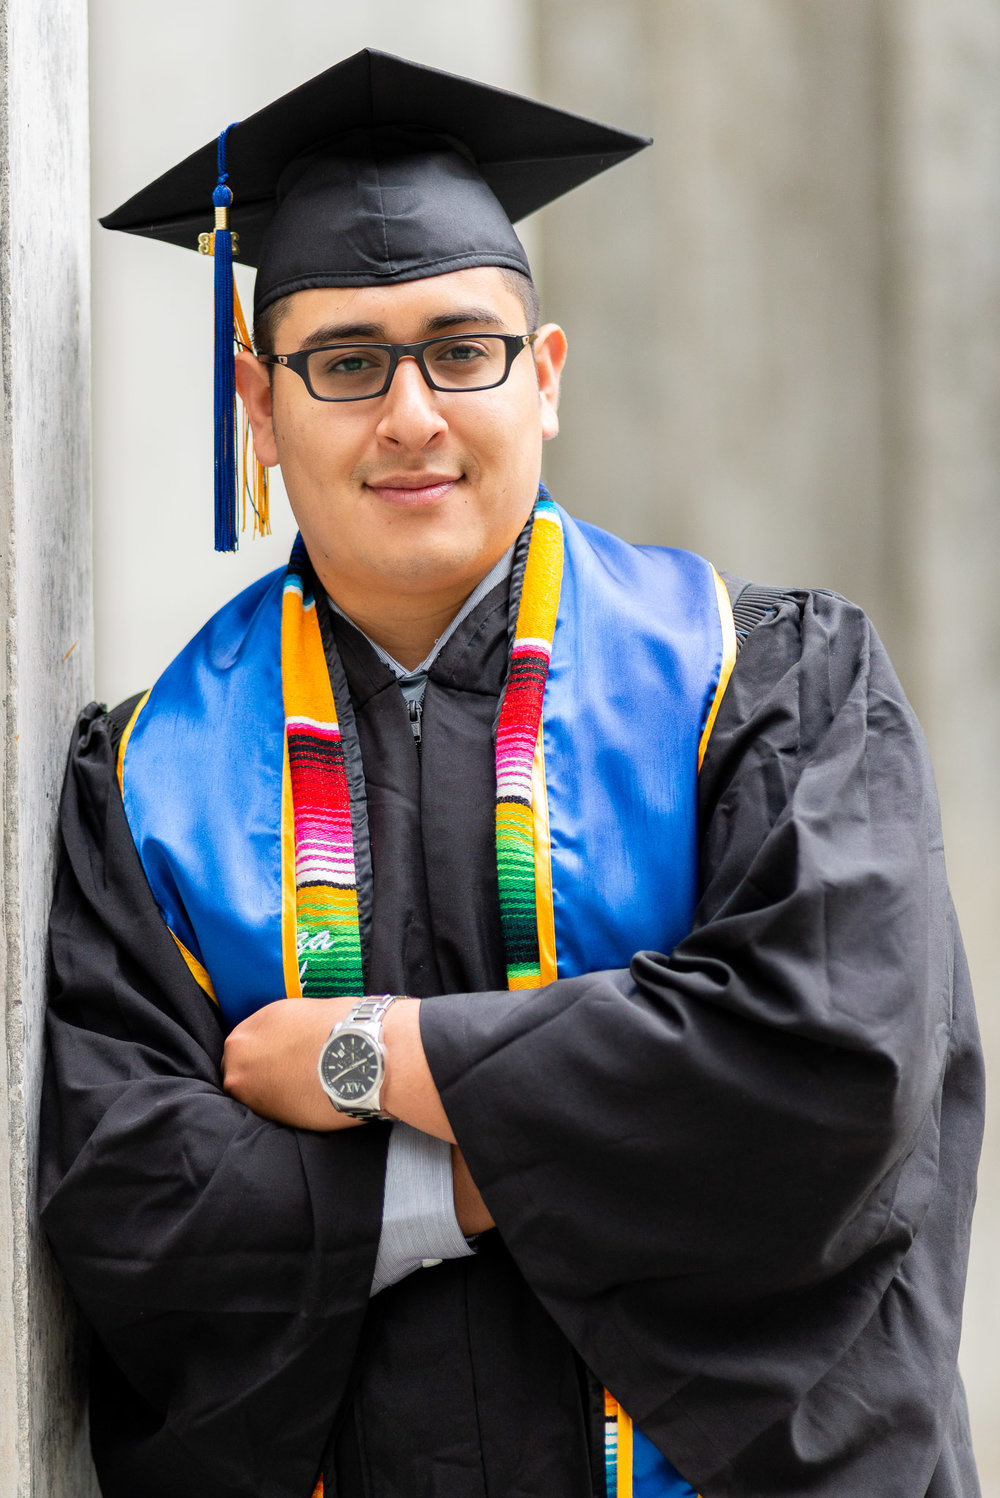 College Graduation Photographer Orange County CA.jpg